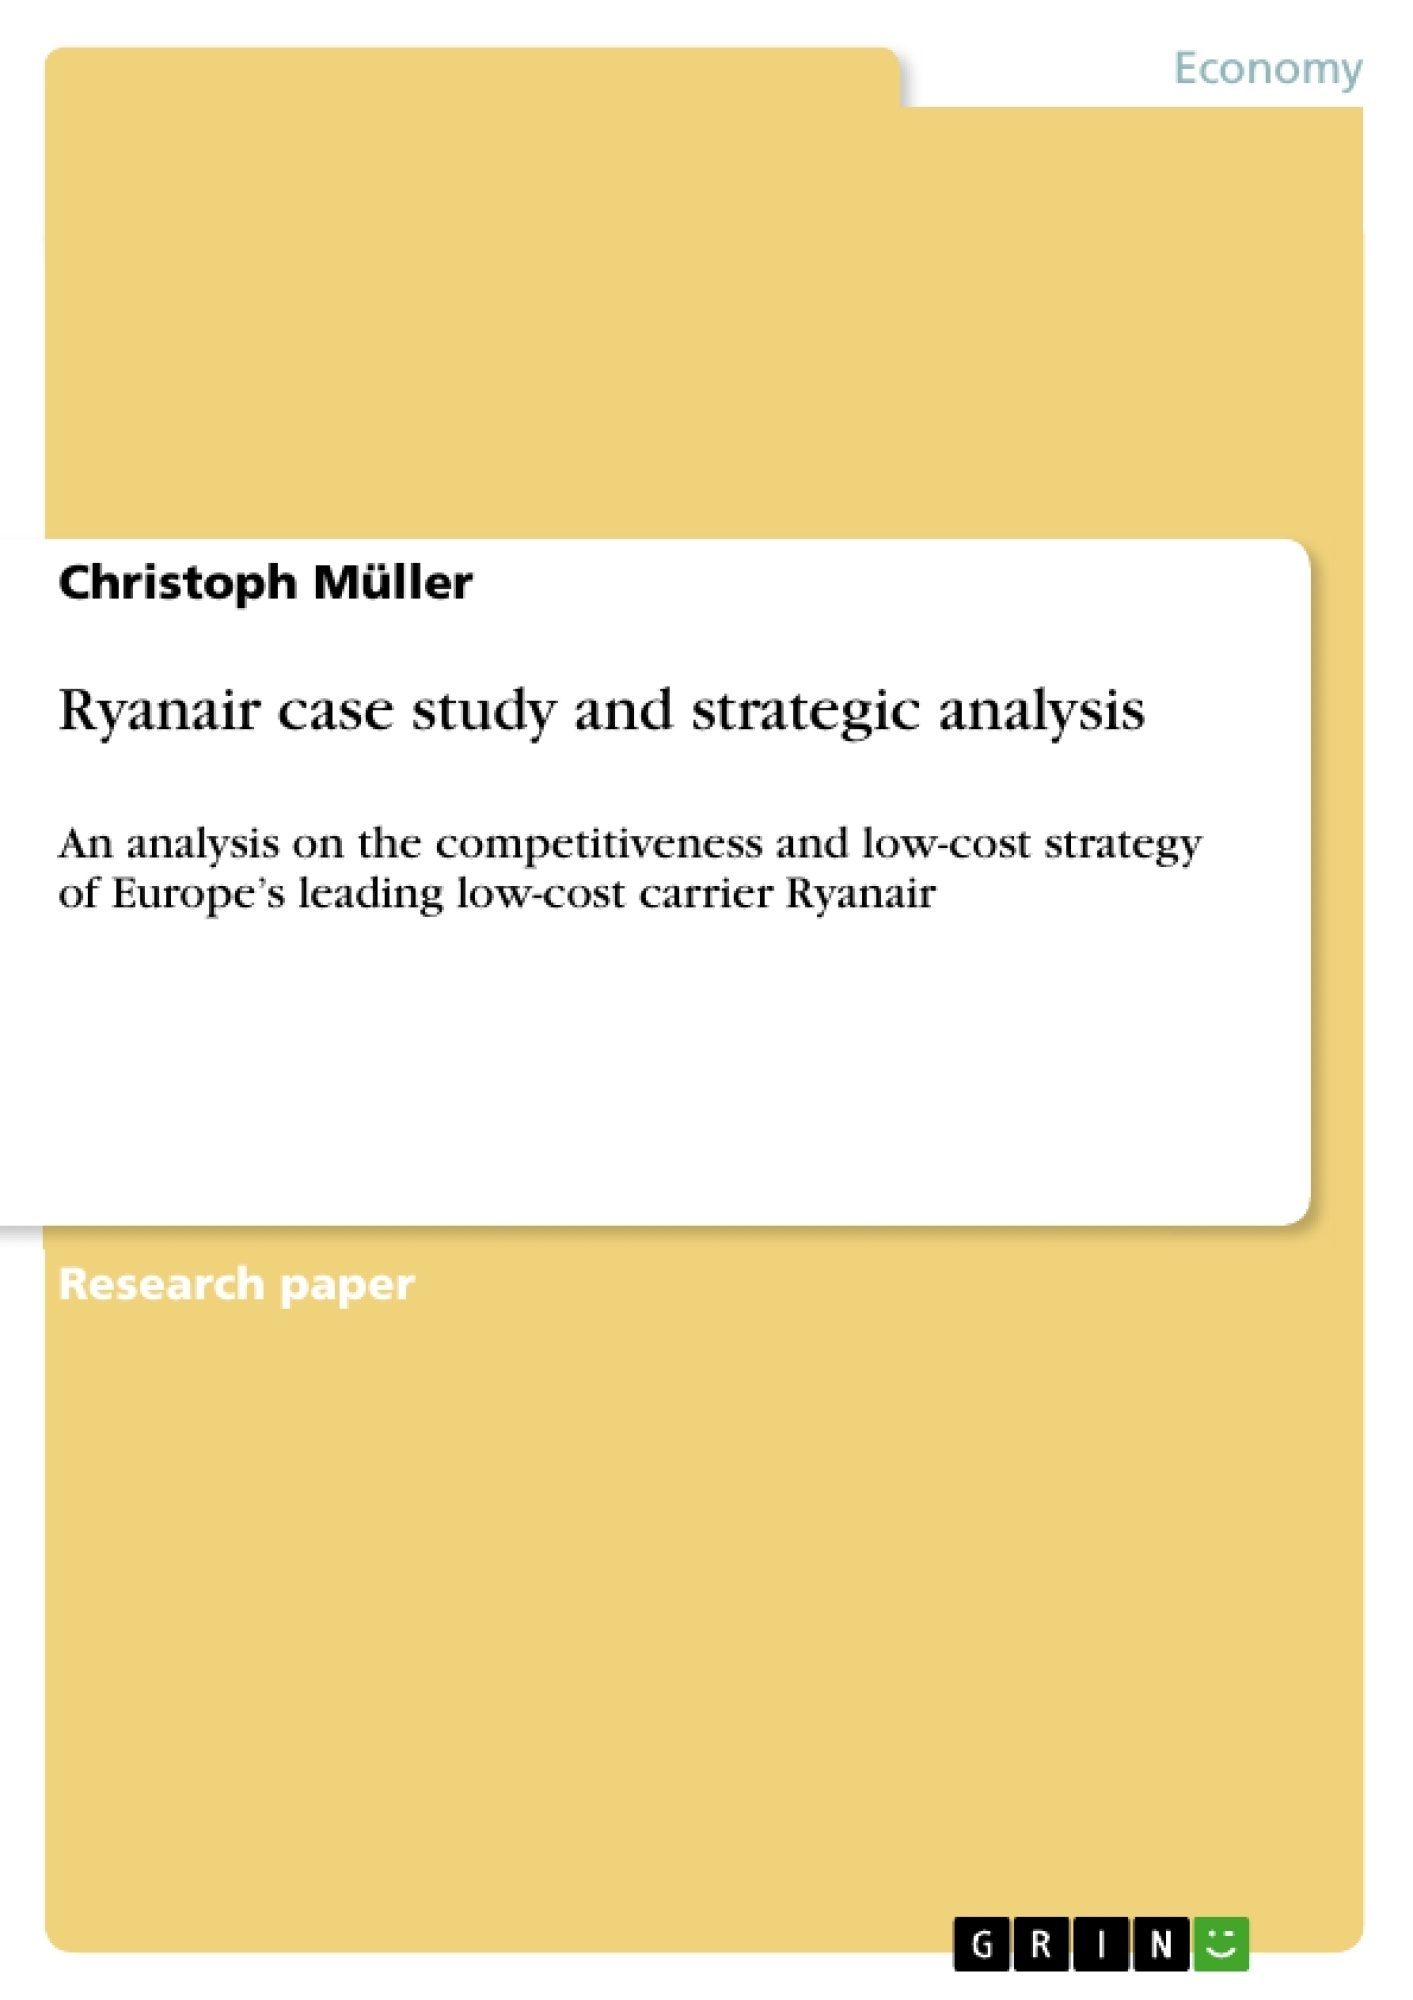 case study and comparative strategic analysis of toyota and ryanair Case study and comparative strategic analysis of toyota and ryanair: the key  differences in the operations strategy of manufacturers and service firms in terms .